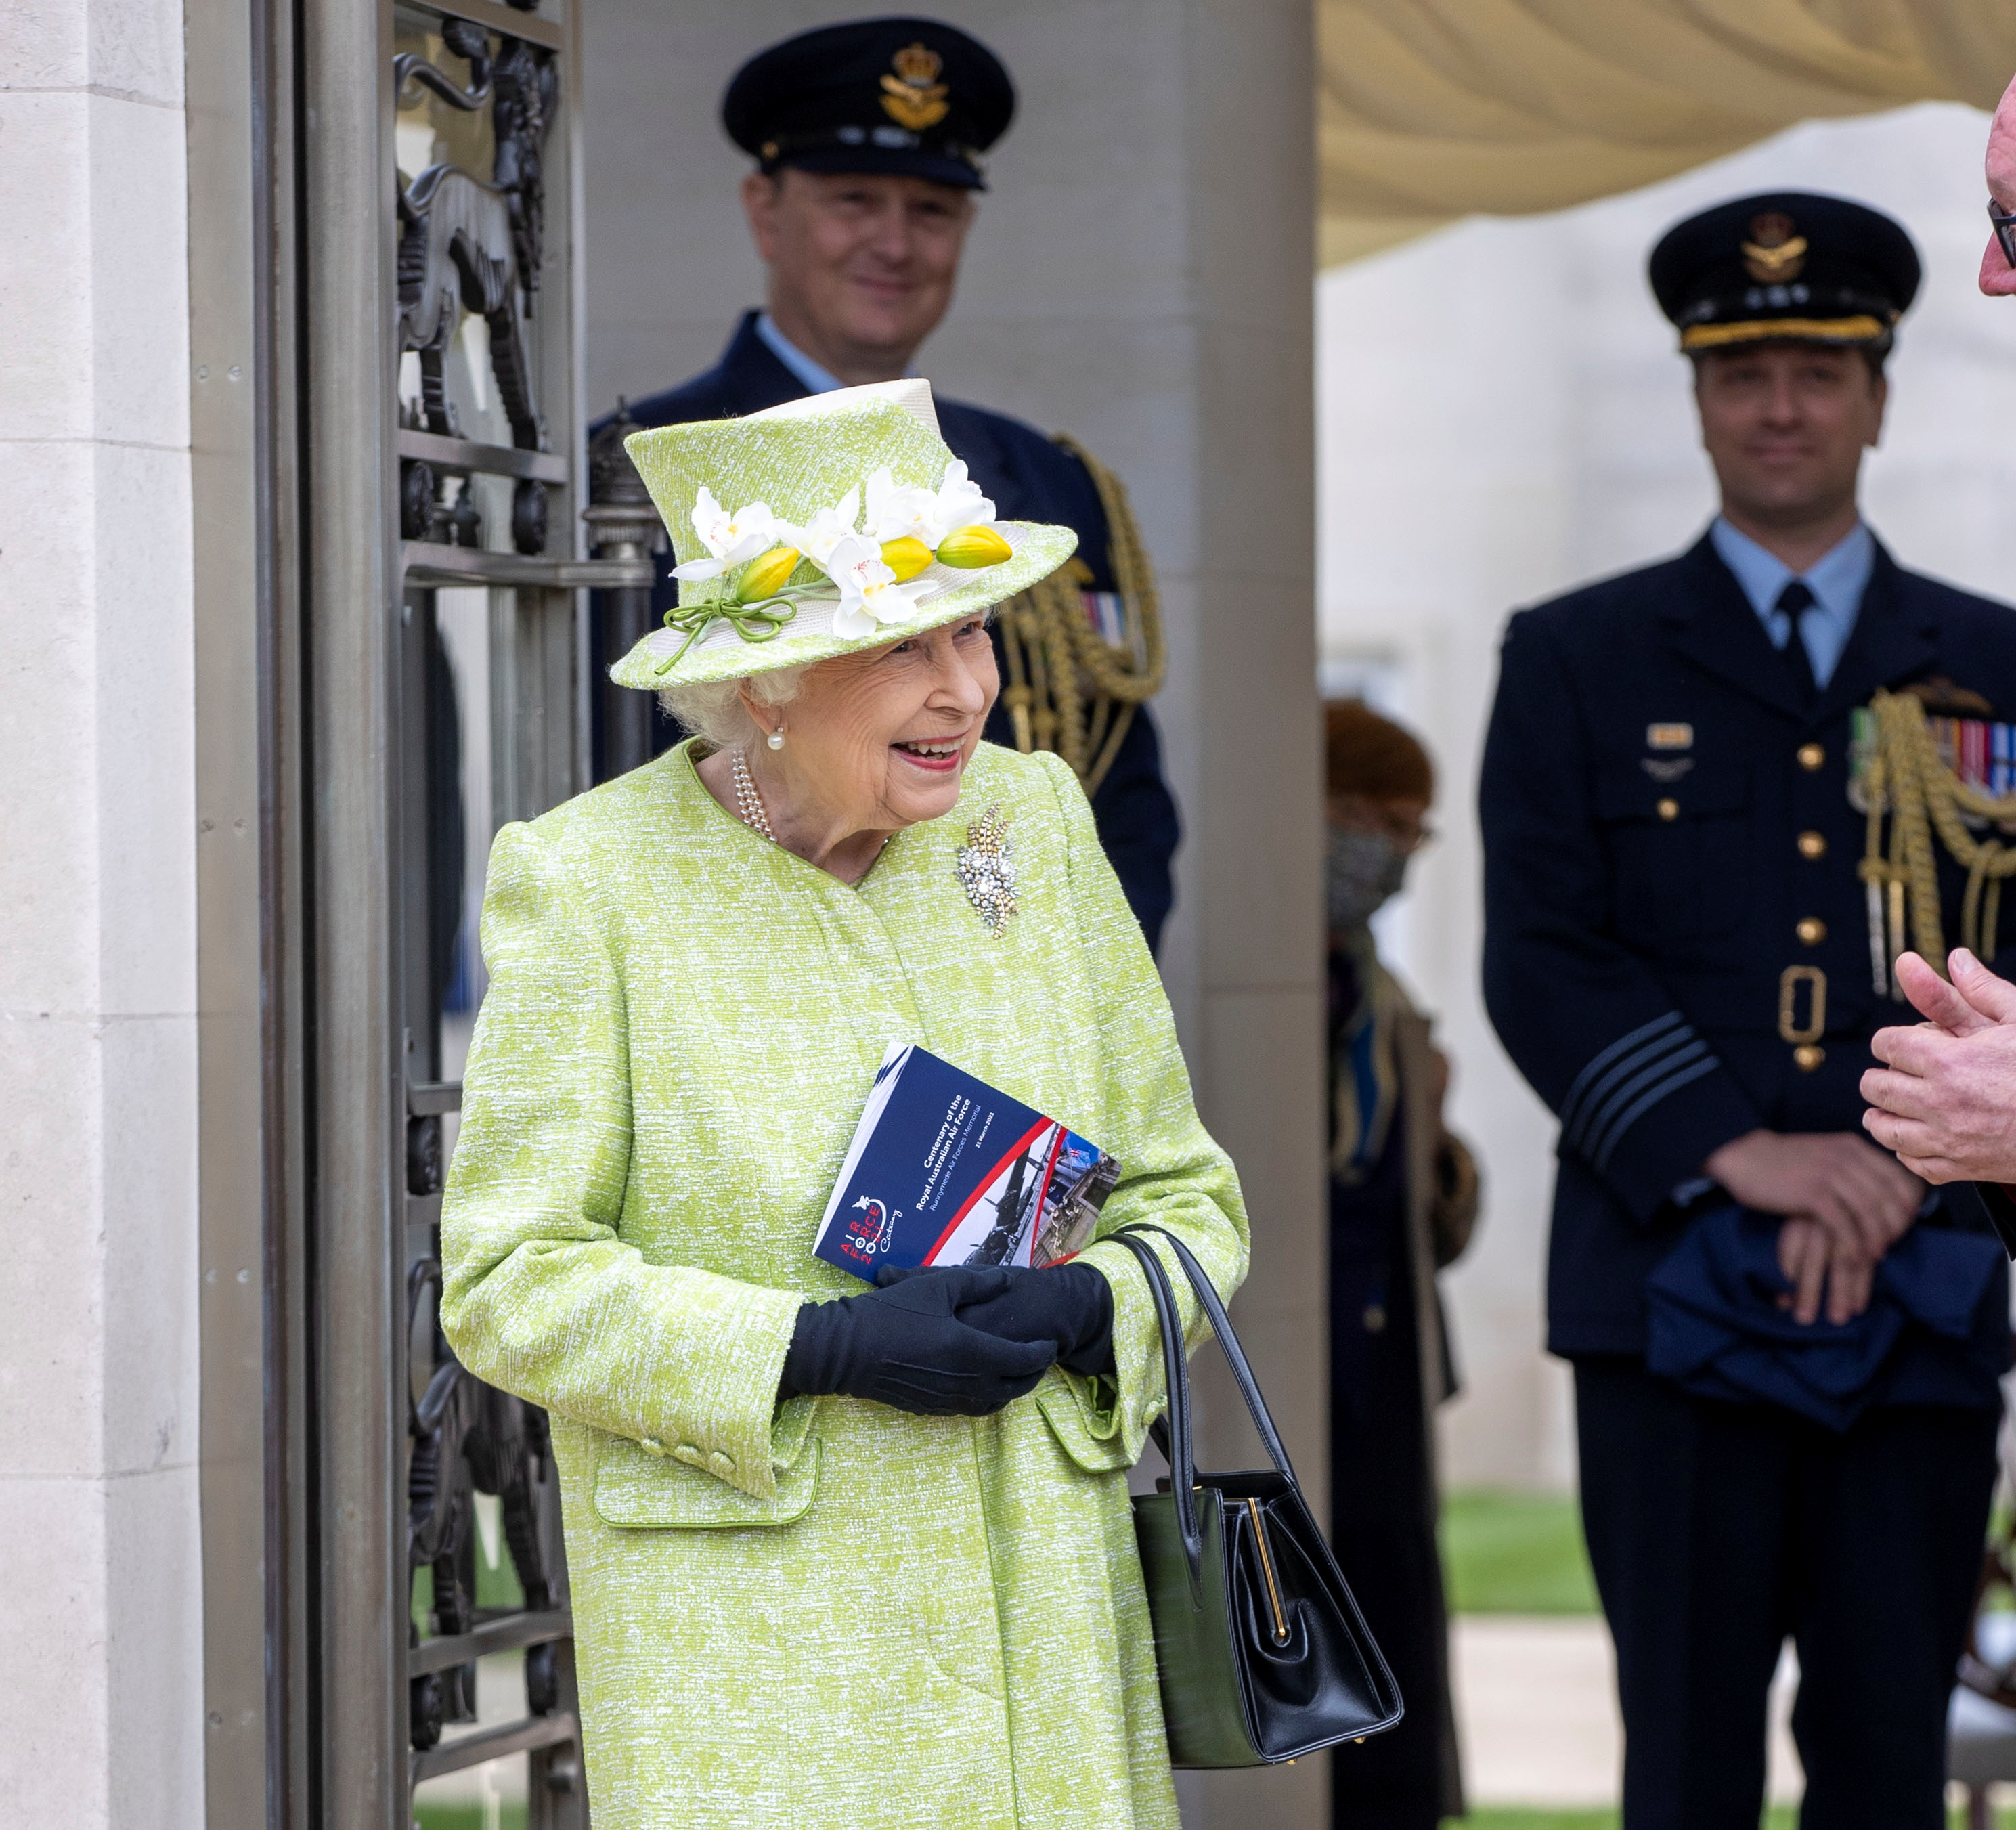 Britain's Queen Elizabeth II visits the Royal Australian Air Force Memorial, in Runnymede district, Britain March 31, 2021. Steve Reigate/Pool via REUTERS